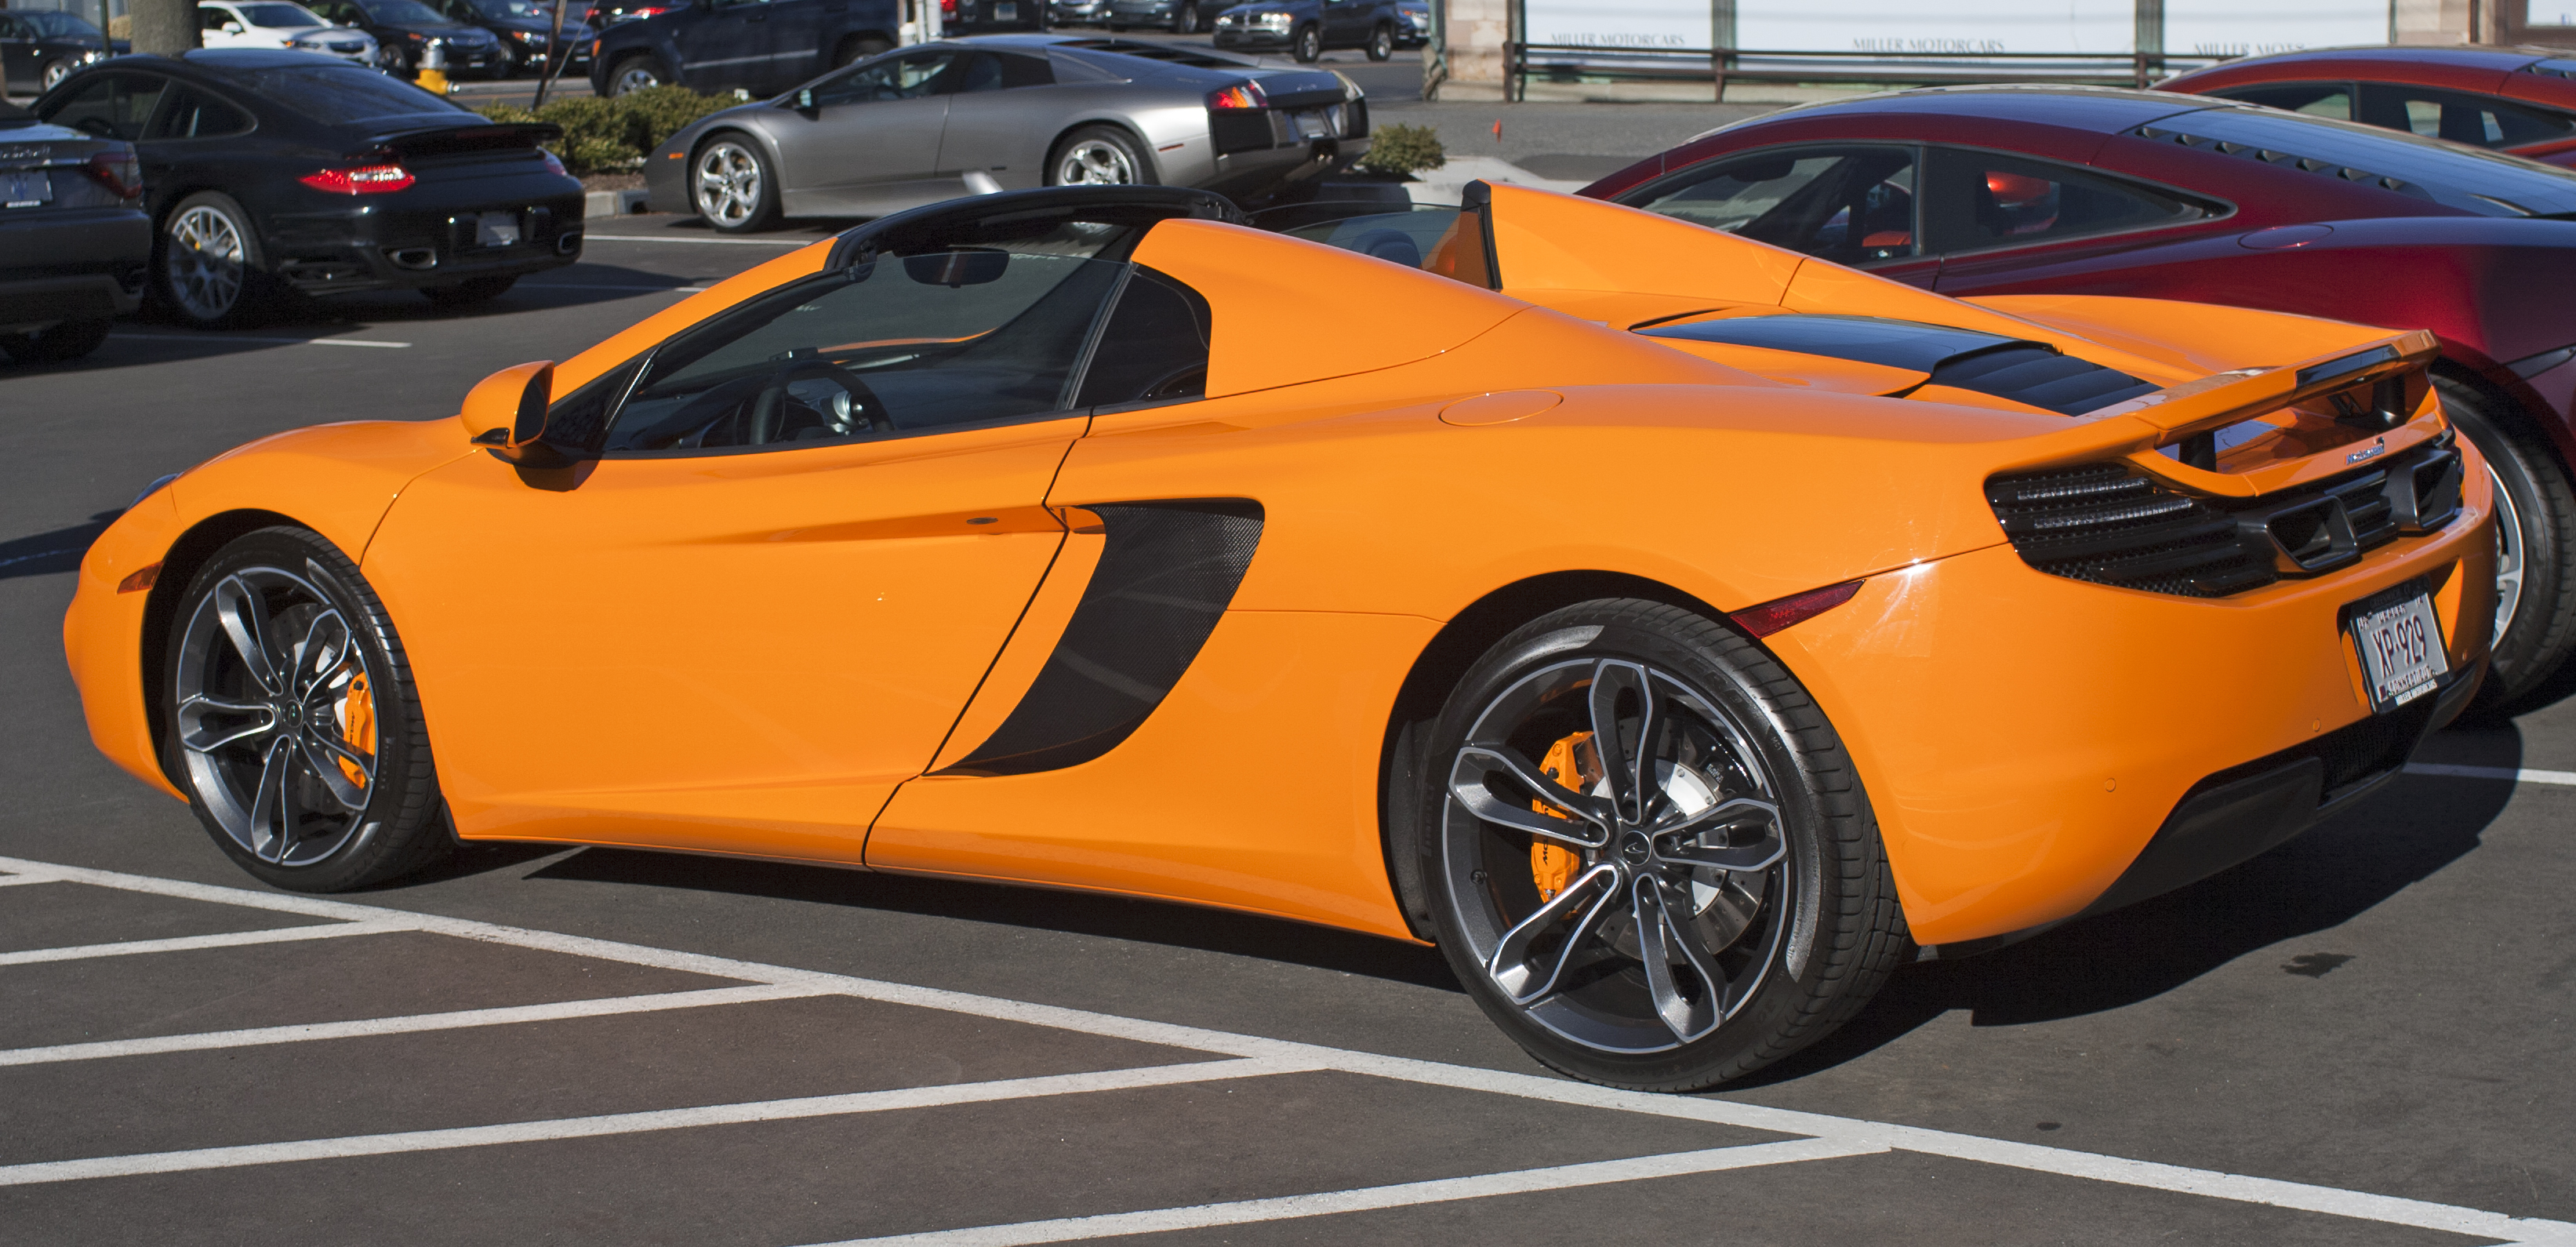 https://upload.wikimedia.org/wikipedia/commons/4/46/2013_McLaren_MP4-12C_Spider_rear.jpg